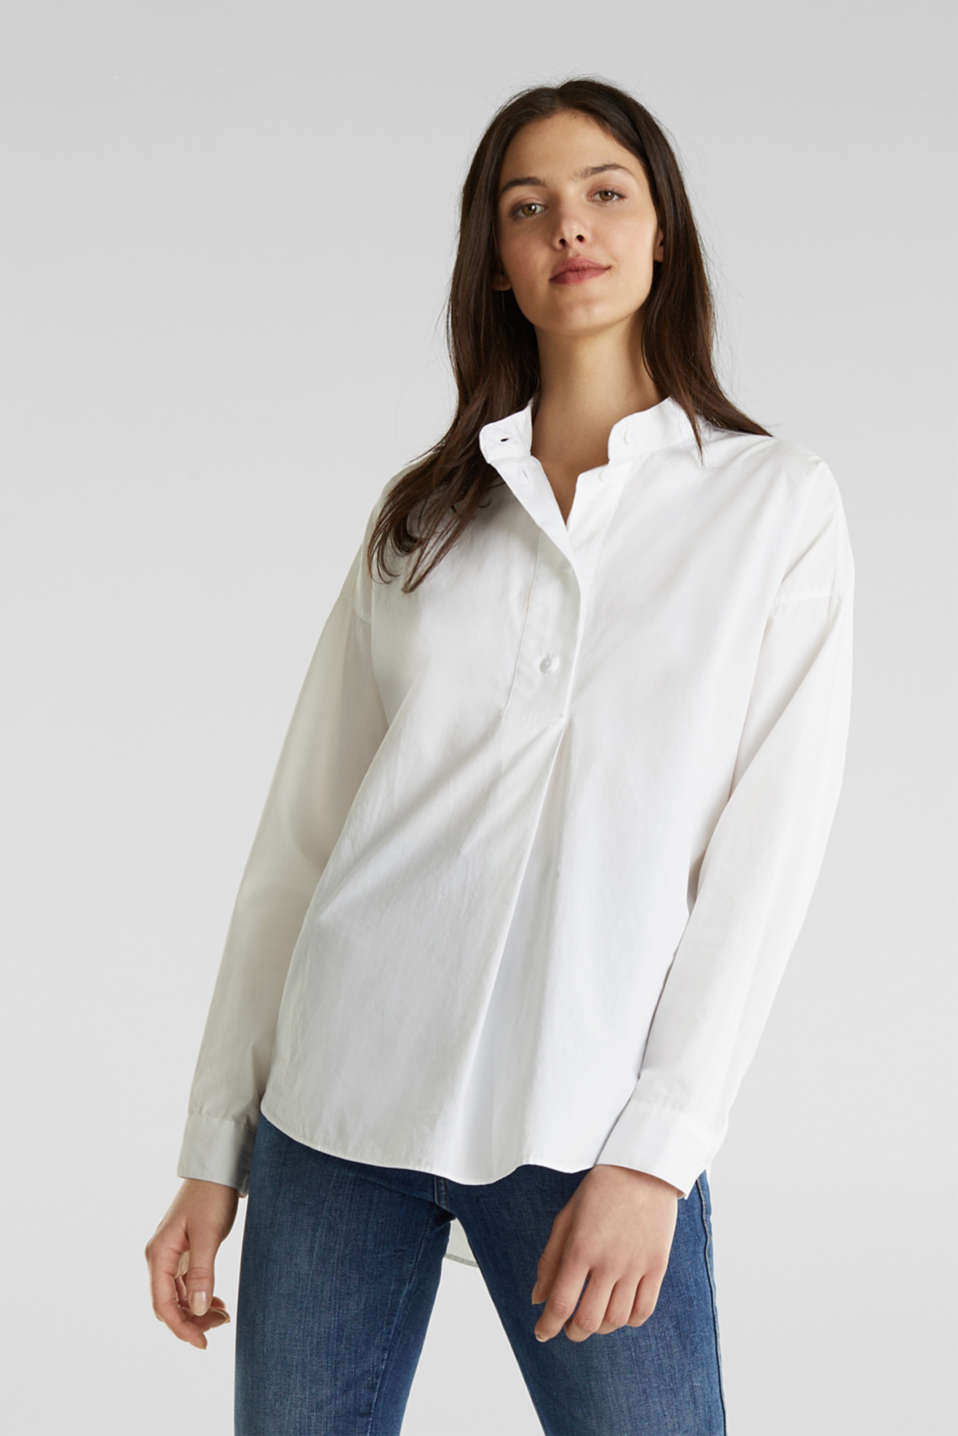 edc - Oversized blouse with a stand-up collar, 100% cotton